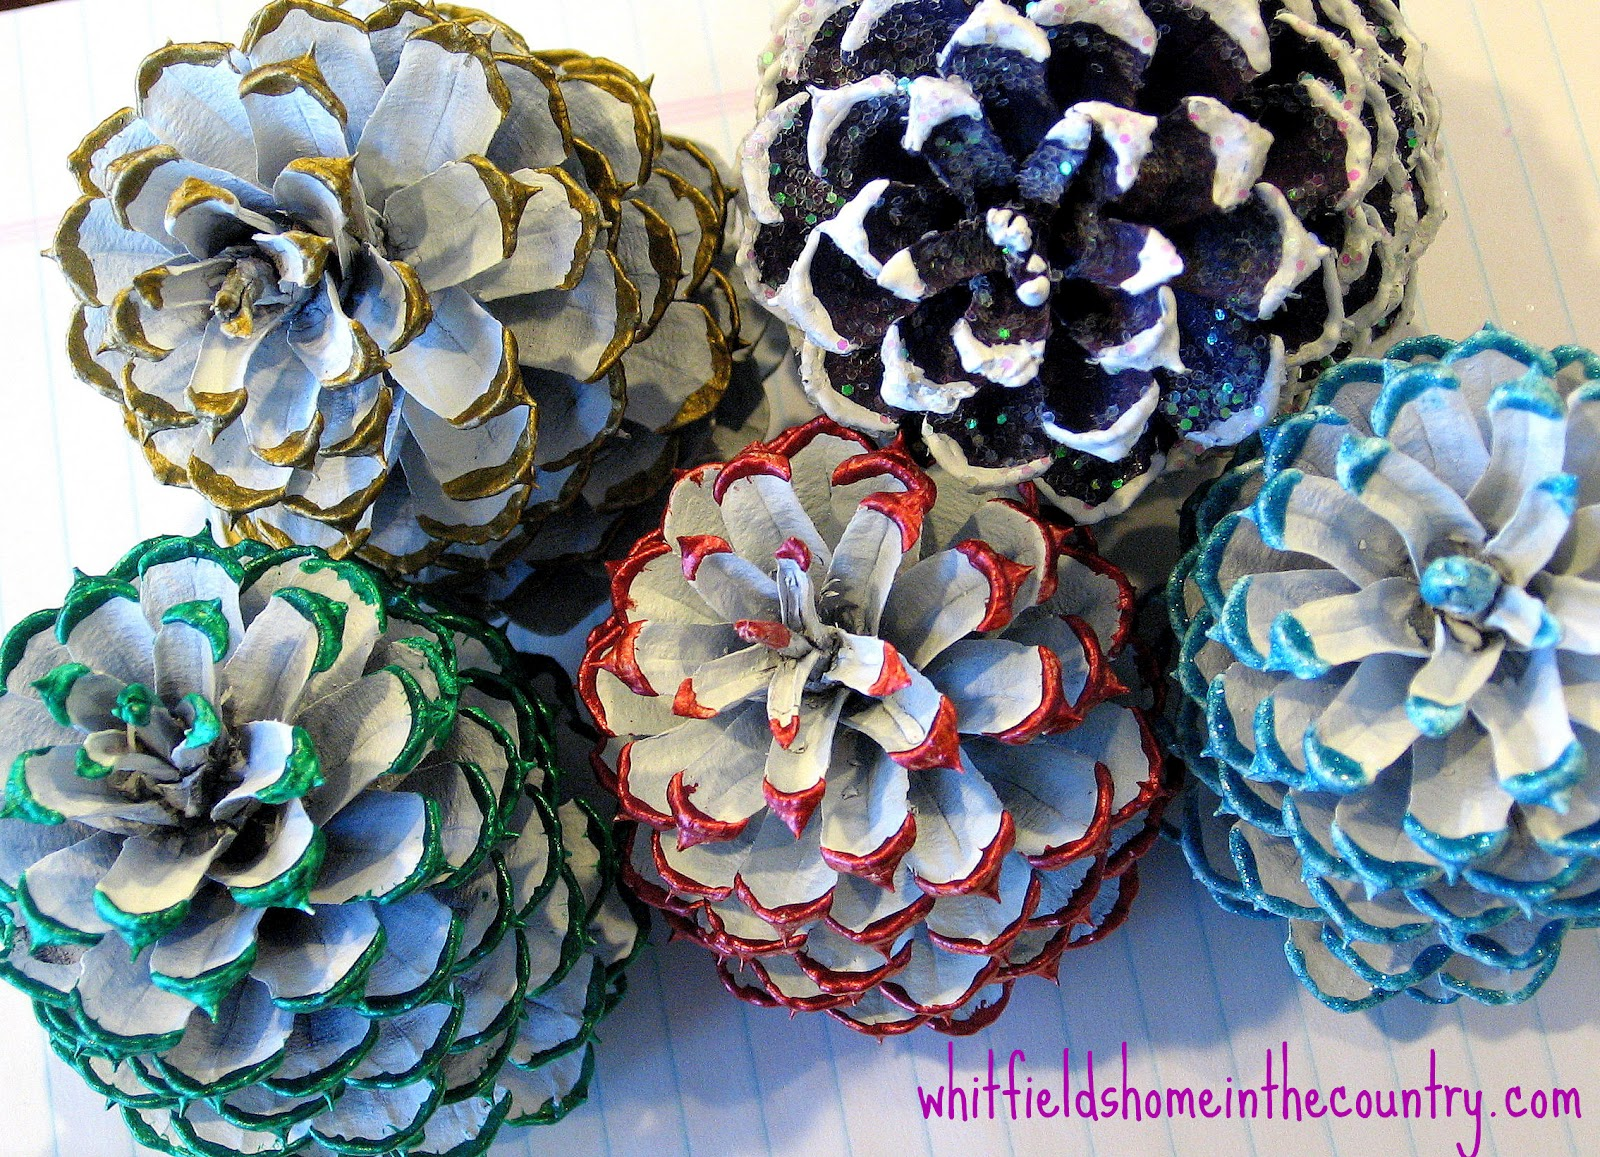 ~ Whitfield's Home ♥ In The Country ~: DIY Pine Cone Ornaments